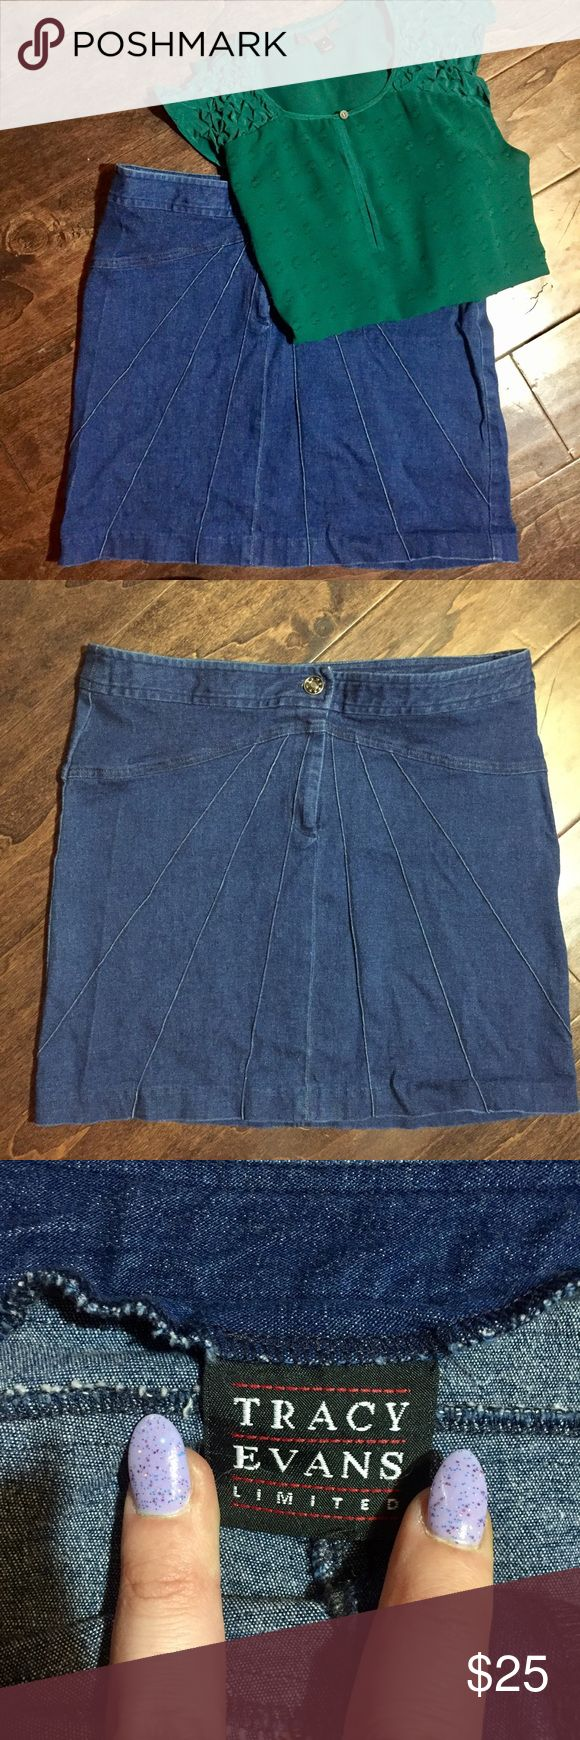 "• Tracy Evans Denim Detail Mini Skirt 90s • Flashback Friday in full effect. This adorable Tracy Evans Limited denim miniskirt bridges the divide between the decades. This can easily be part of your weekend wardrobe.  Measurements taken flat:  15"" waist  16.5"" hip 15.25"" length Tracy Evans Skirts Mini"